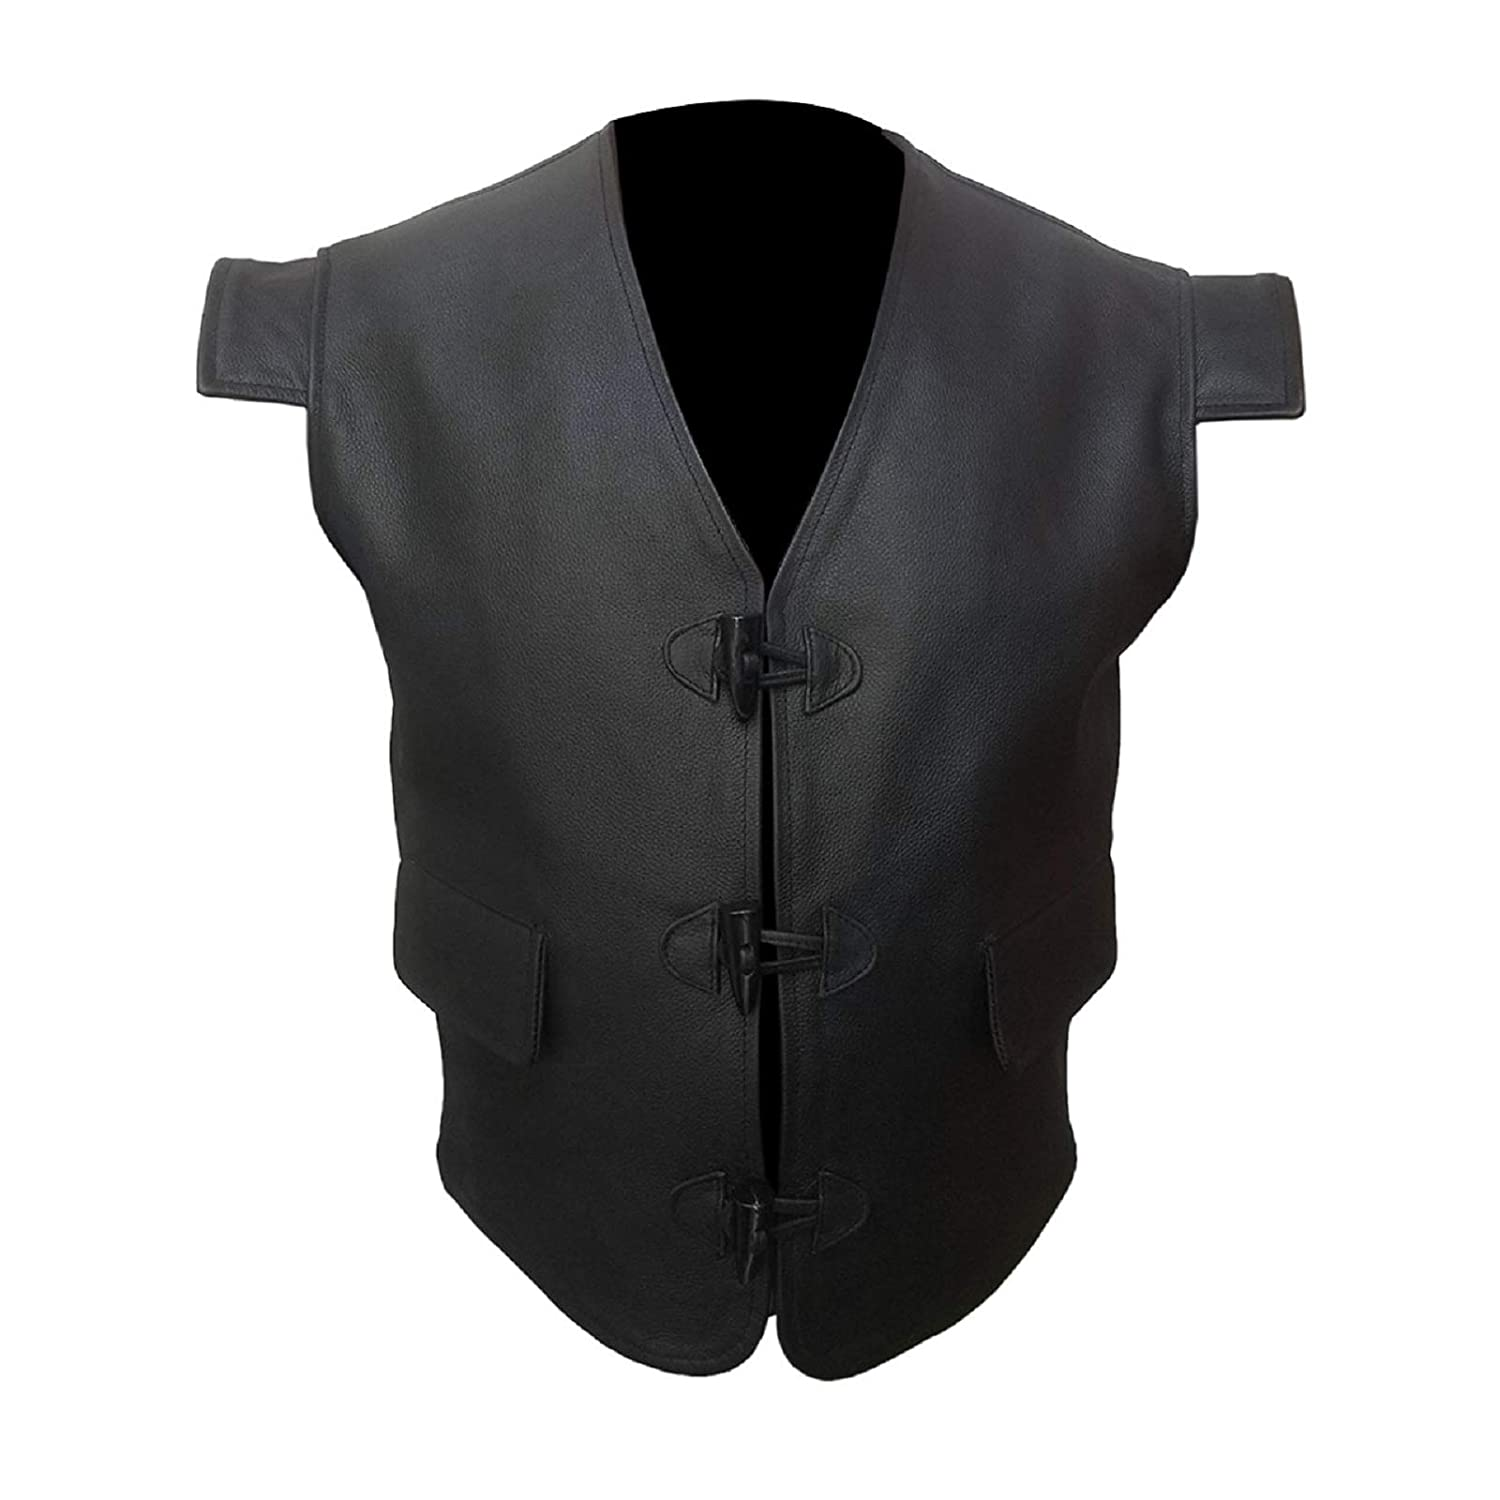 "Deluxe New Men/""s Tan Real Suede Leather Party Waistcoat Classic Fashion Design"